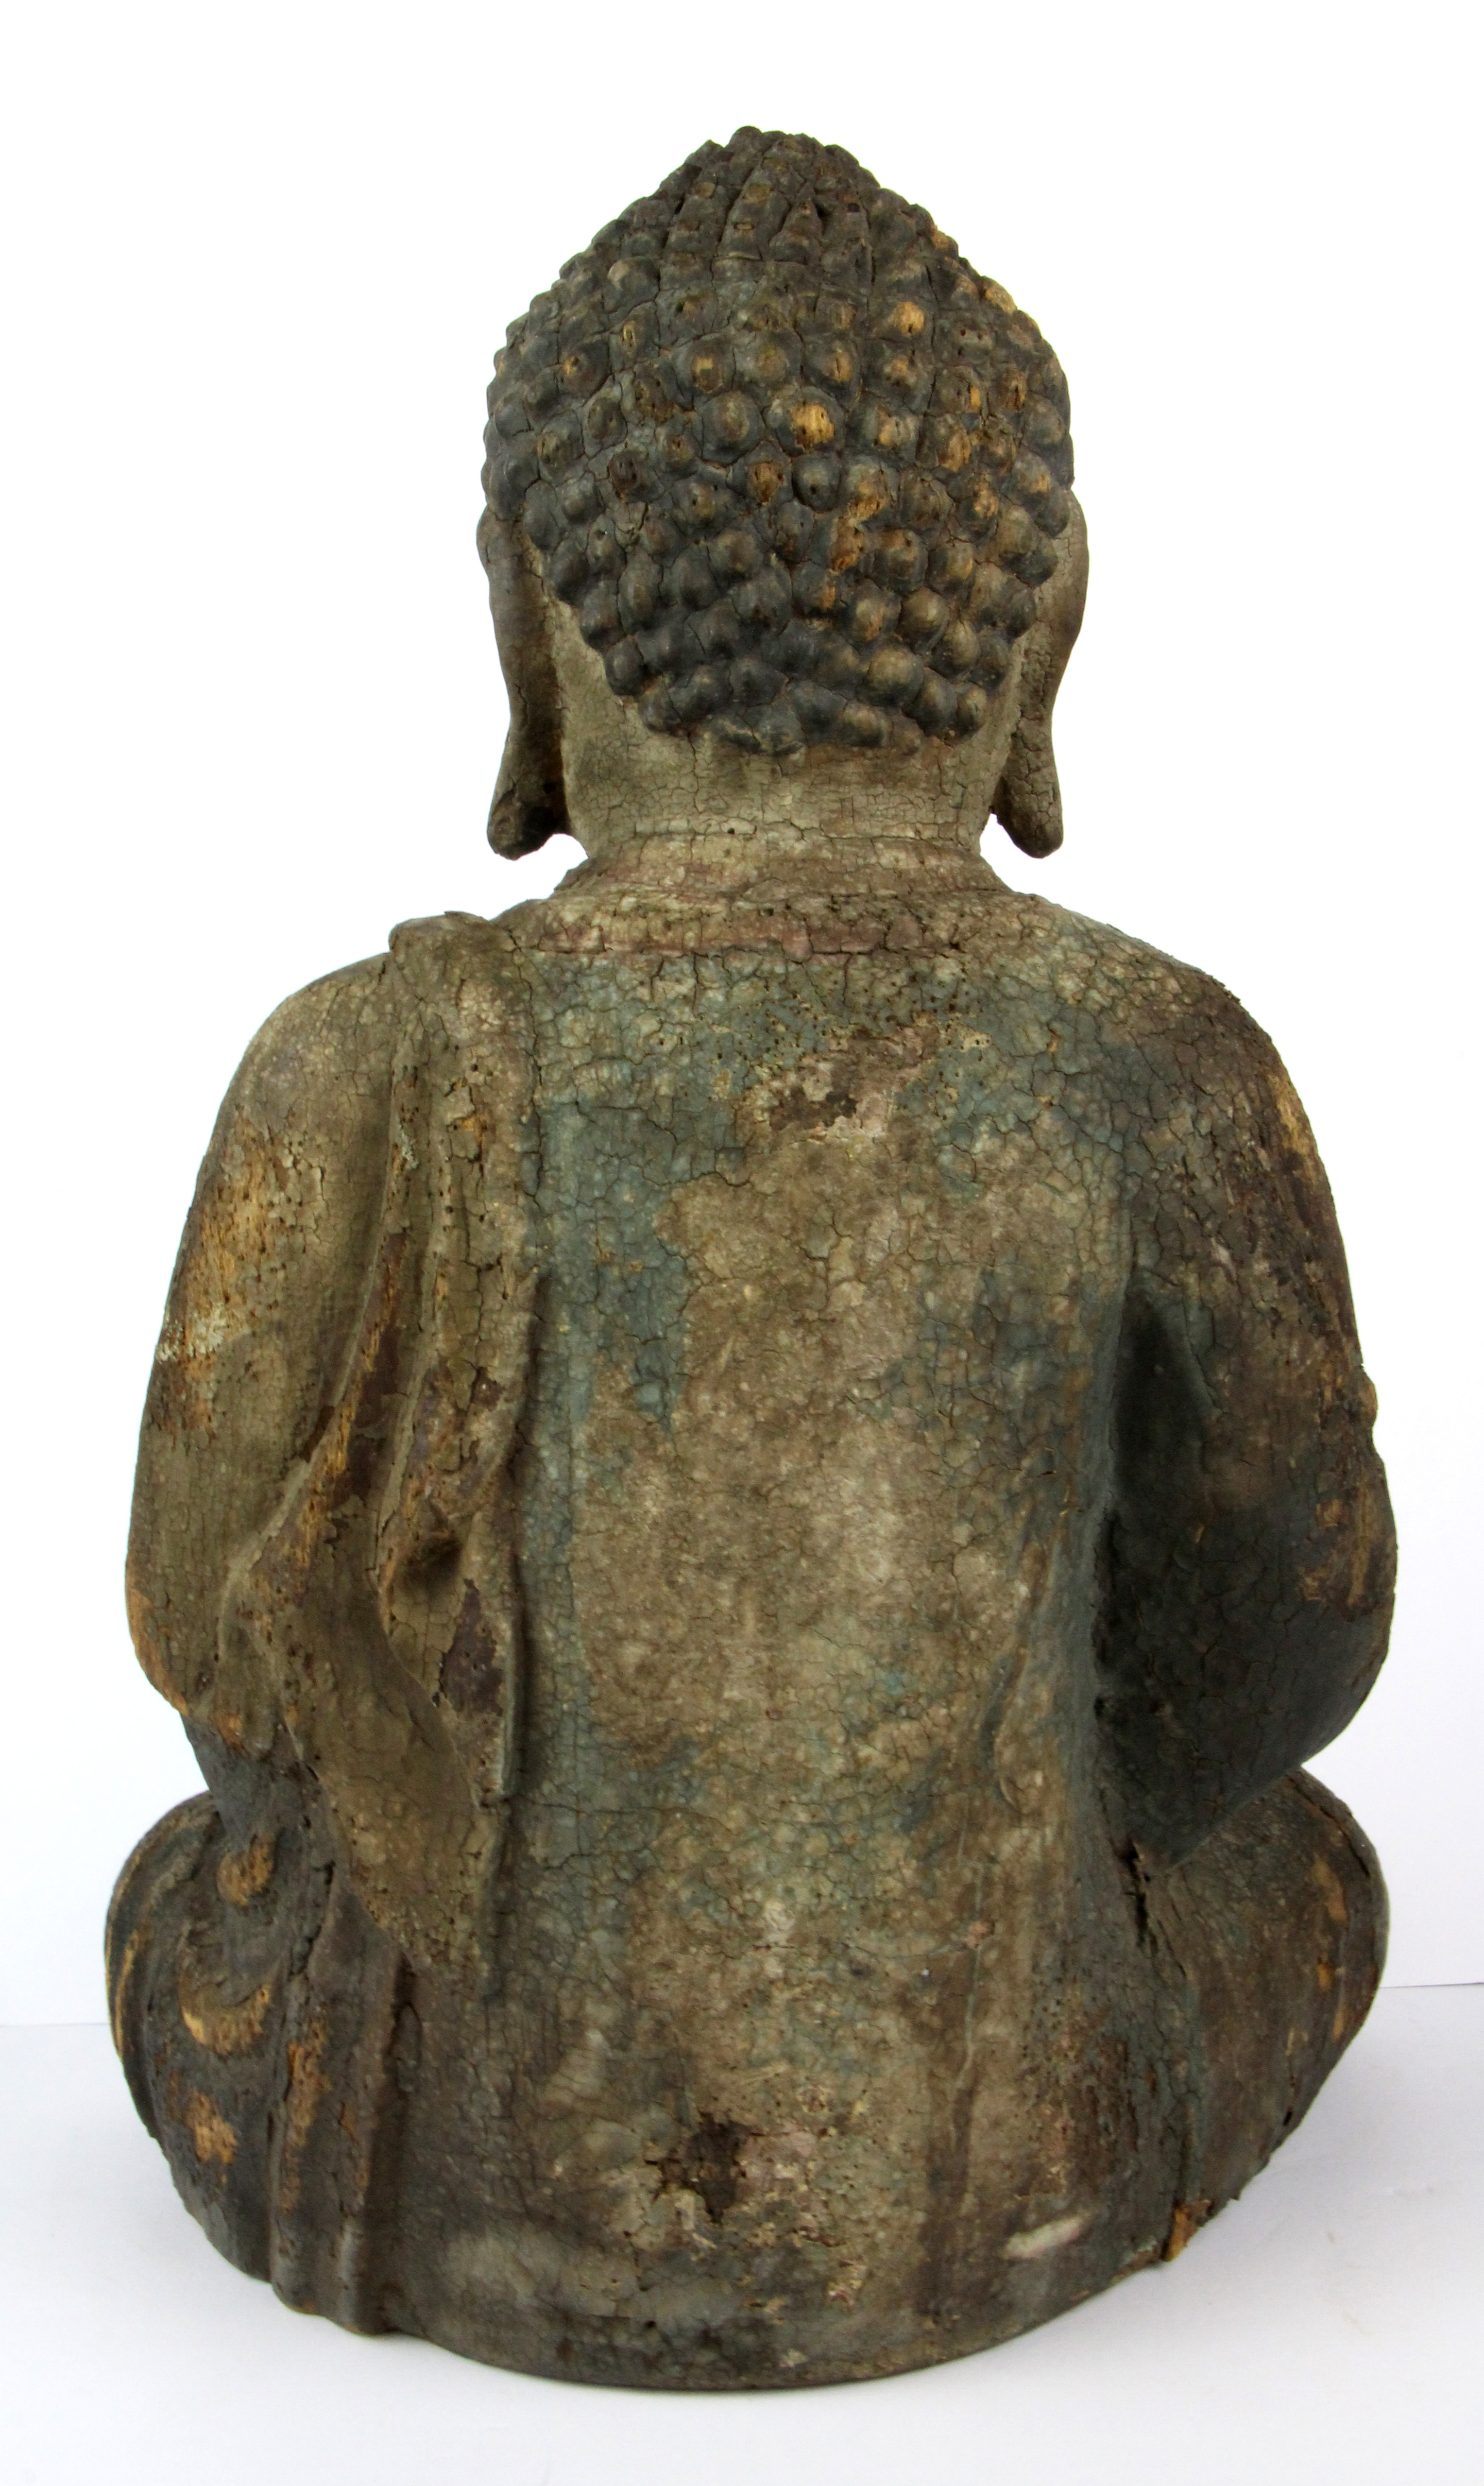 Lot 302 - A Chinese carved and gesso finished wooden temple Buddha, H. 43cm.